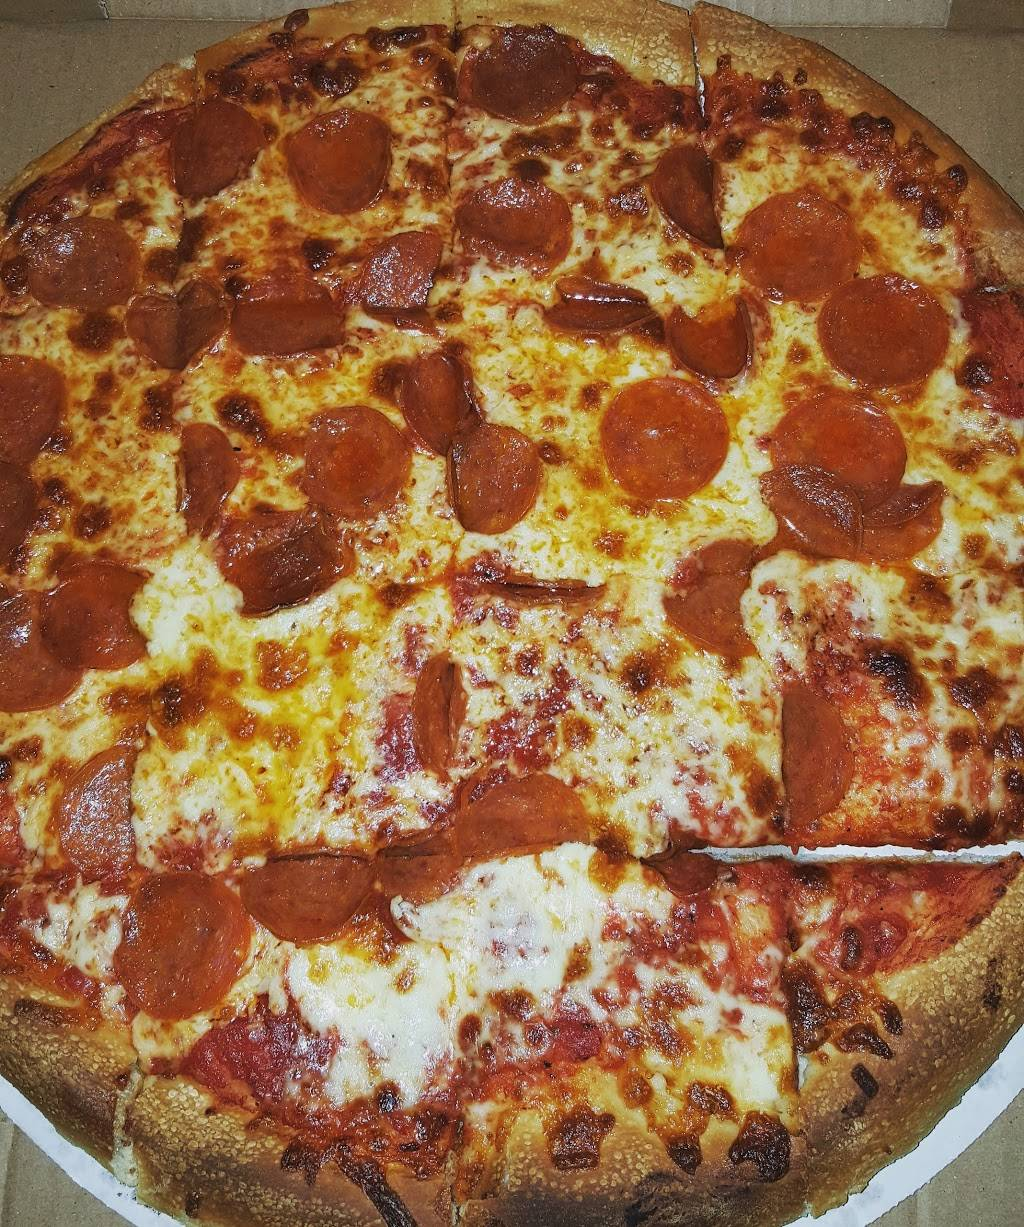 Charlies Pizza   meal delivery   386 Prospect St, East Hartford, CT 06108, USA   8605280111 OR +1 860-528-0111